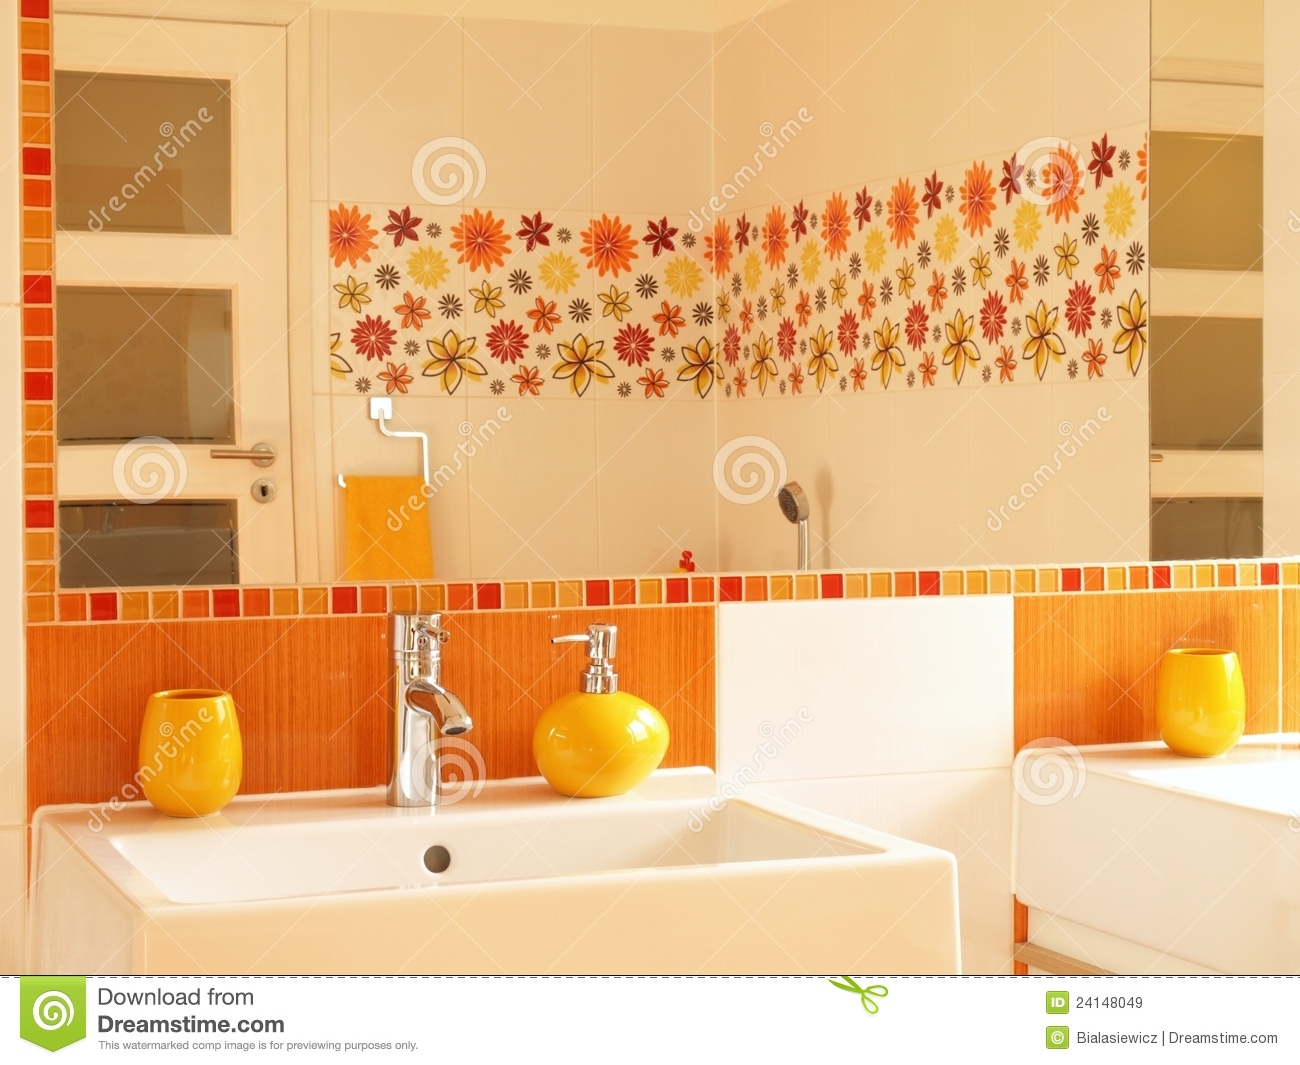 Modern Bathroom With Flower Decor Tiles Royalty Free Stock